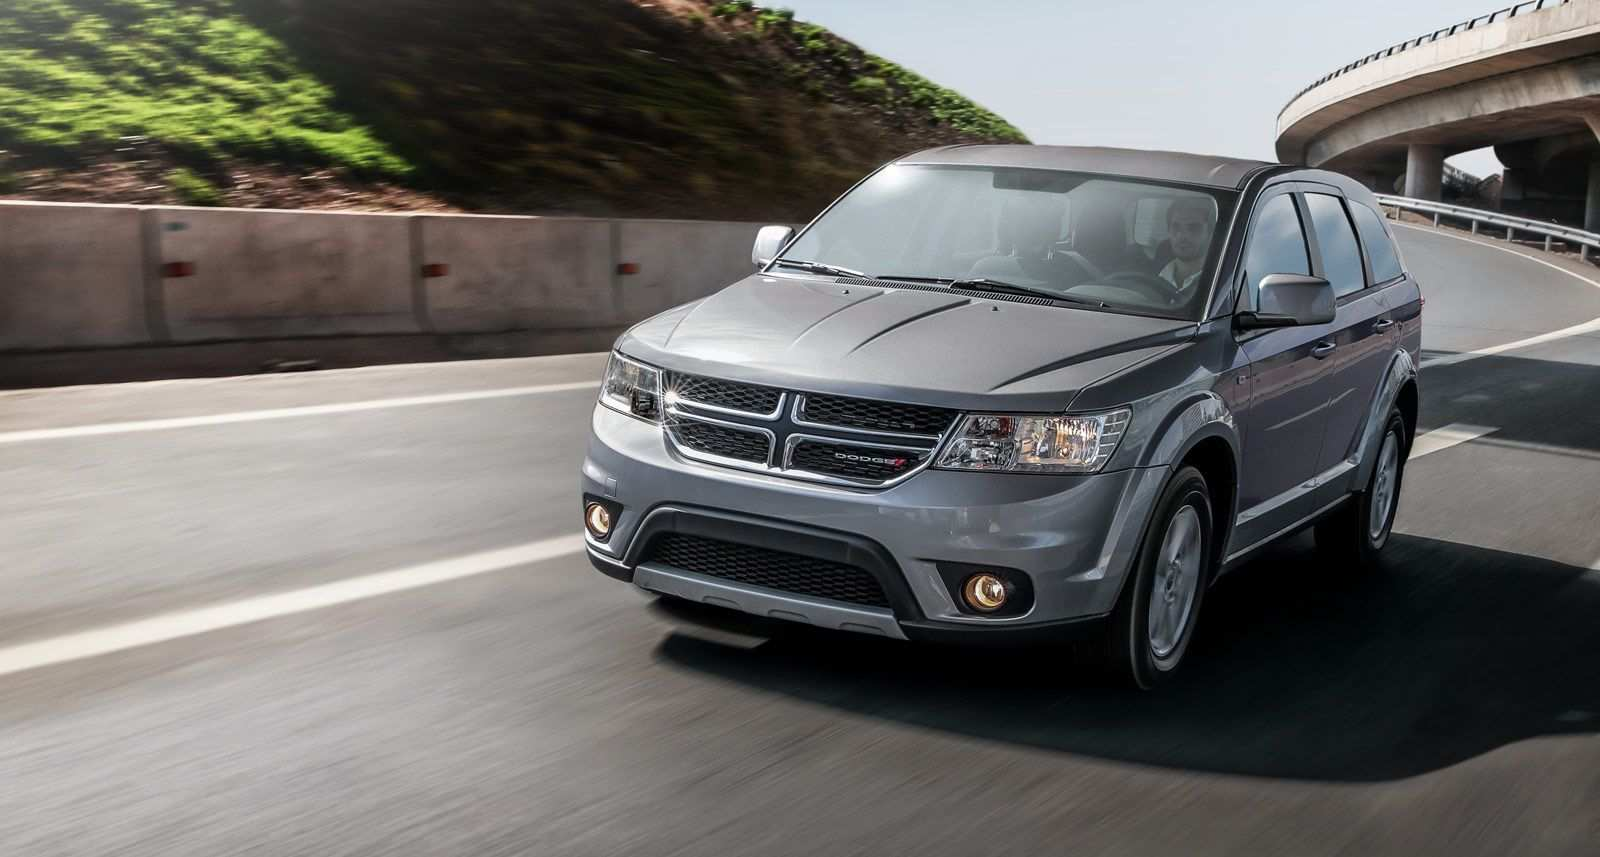 13 All New Dodge Journey 2020 Colombia Specs